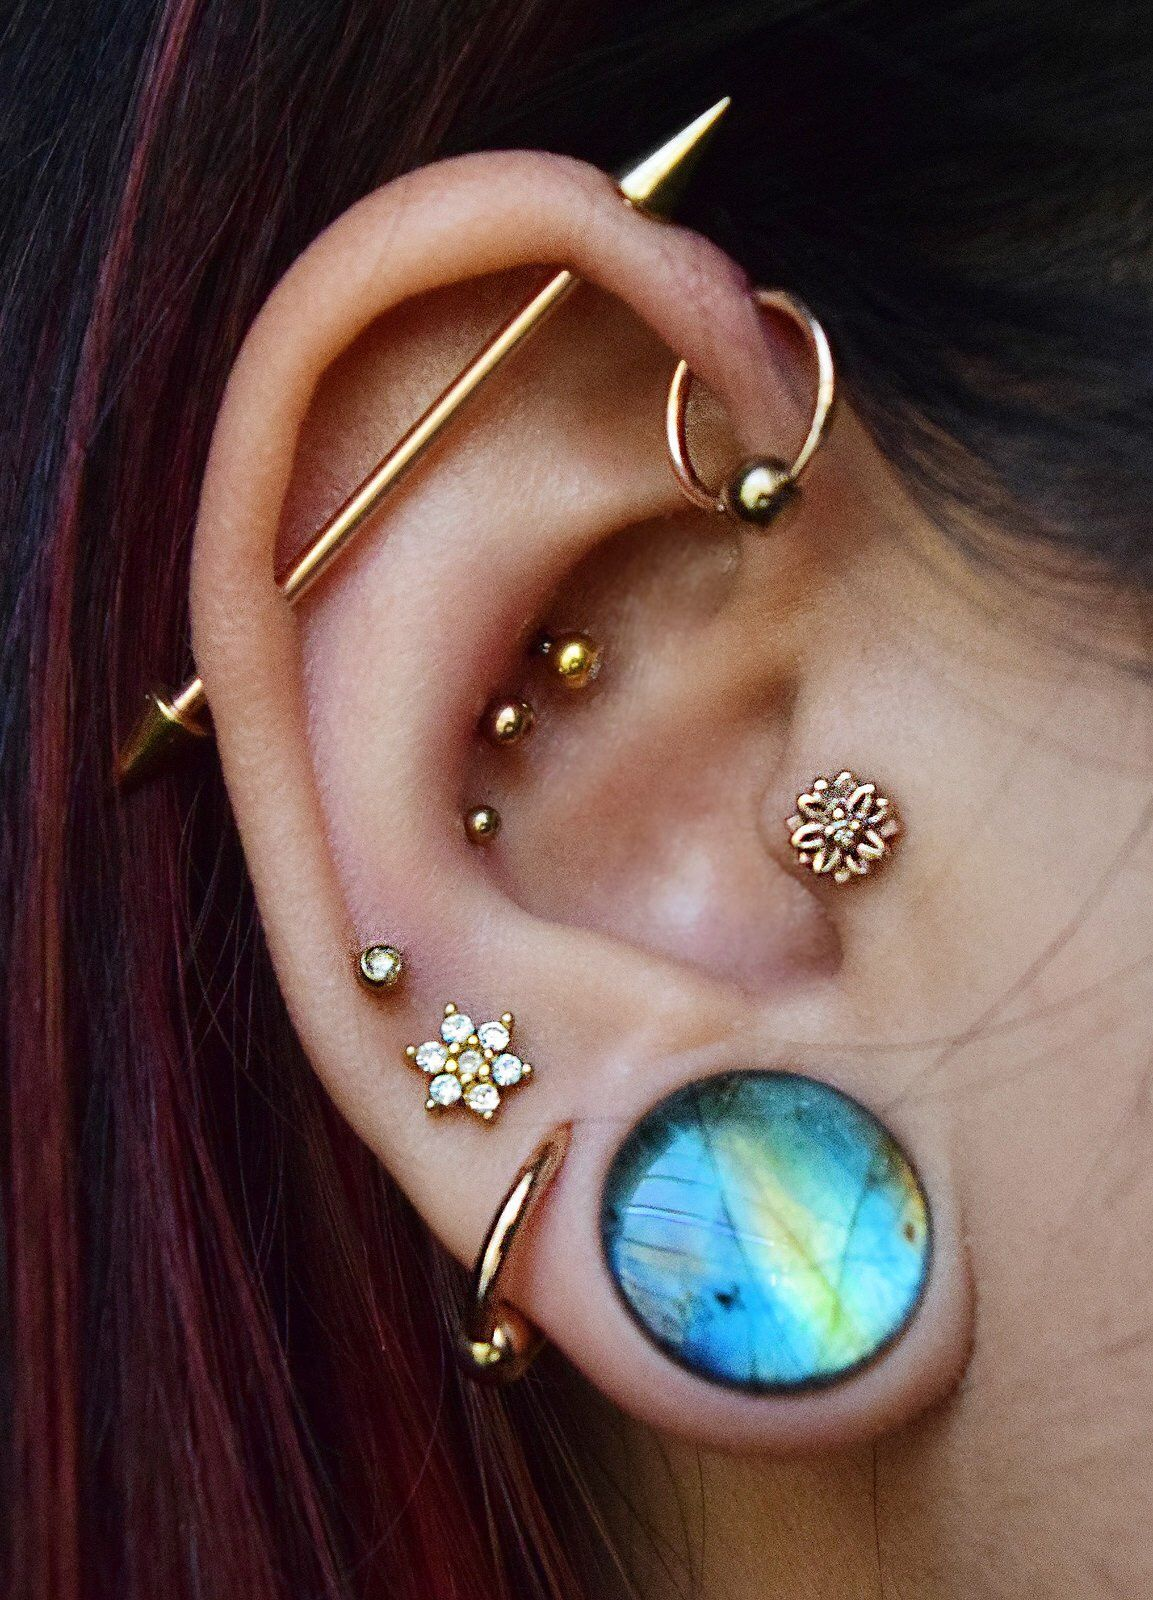 Body piercing jewelry  Donut like the gauge or the industrial piercing but I like